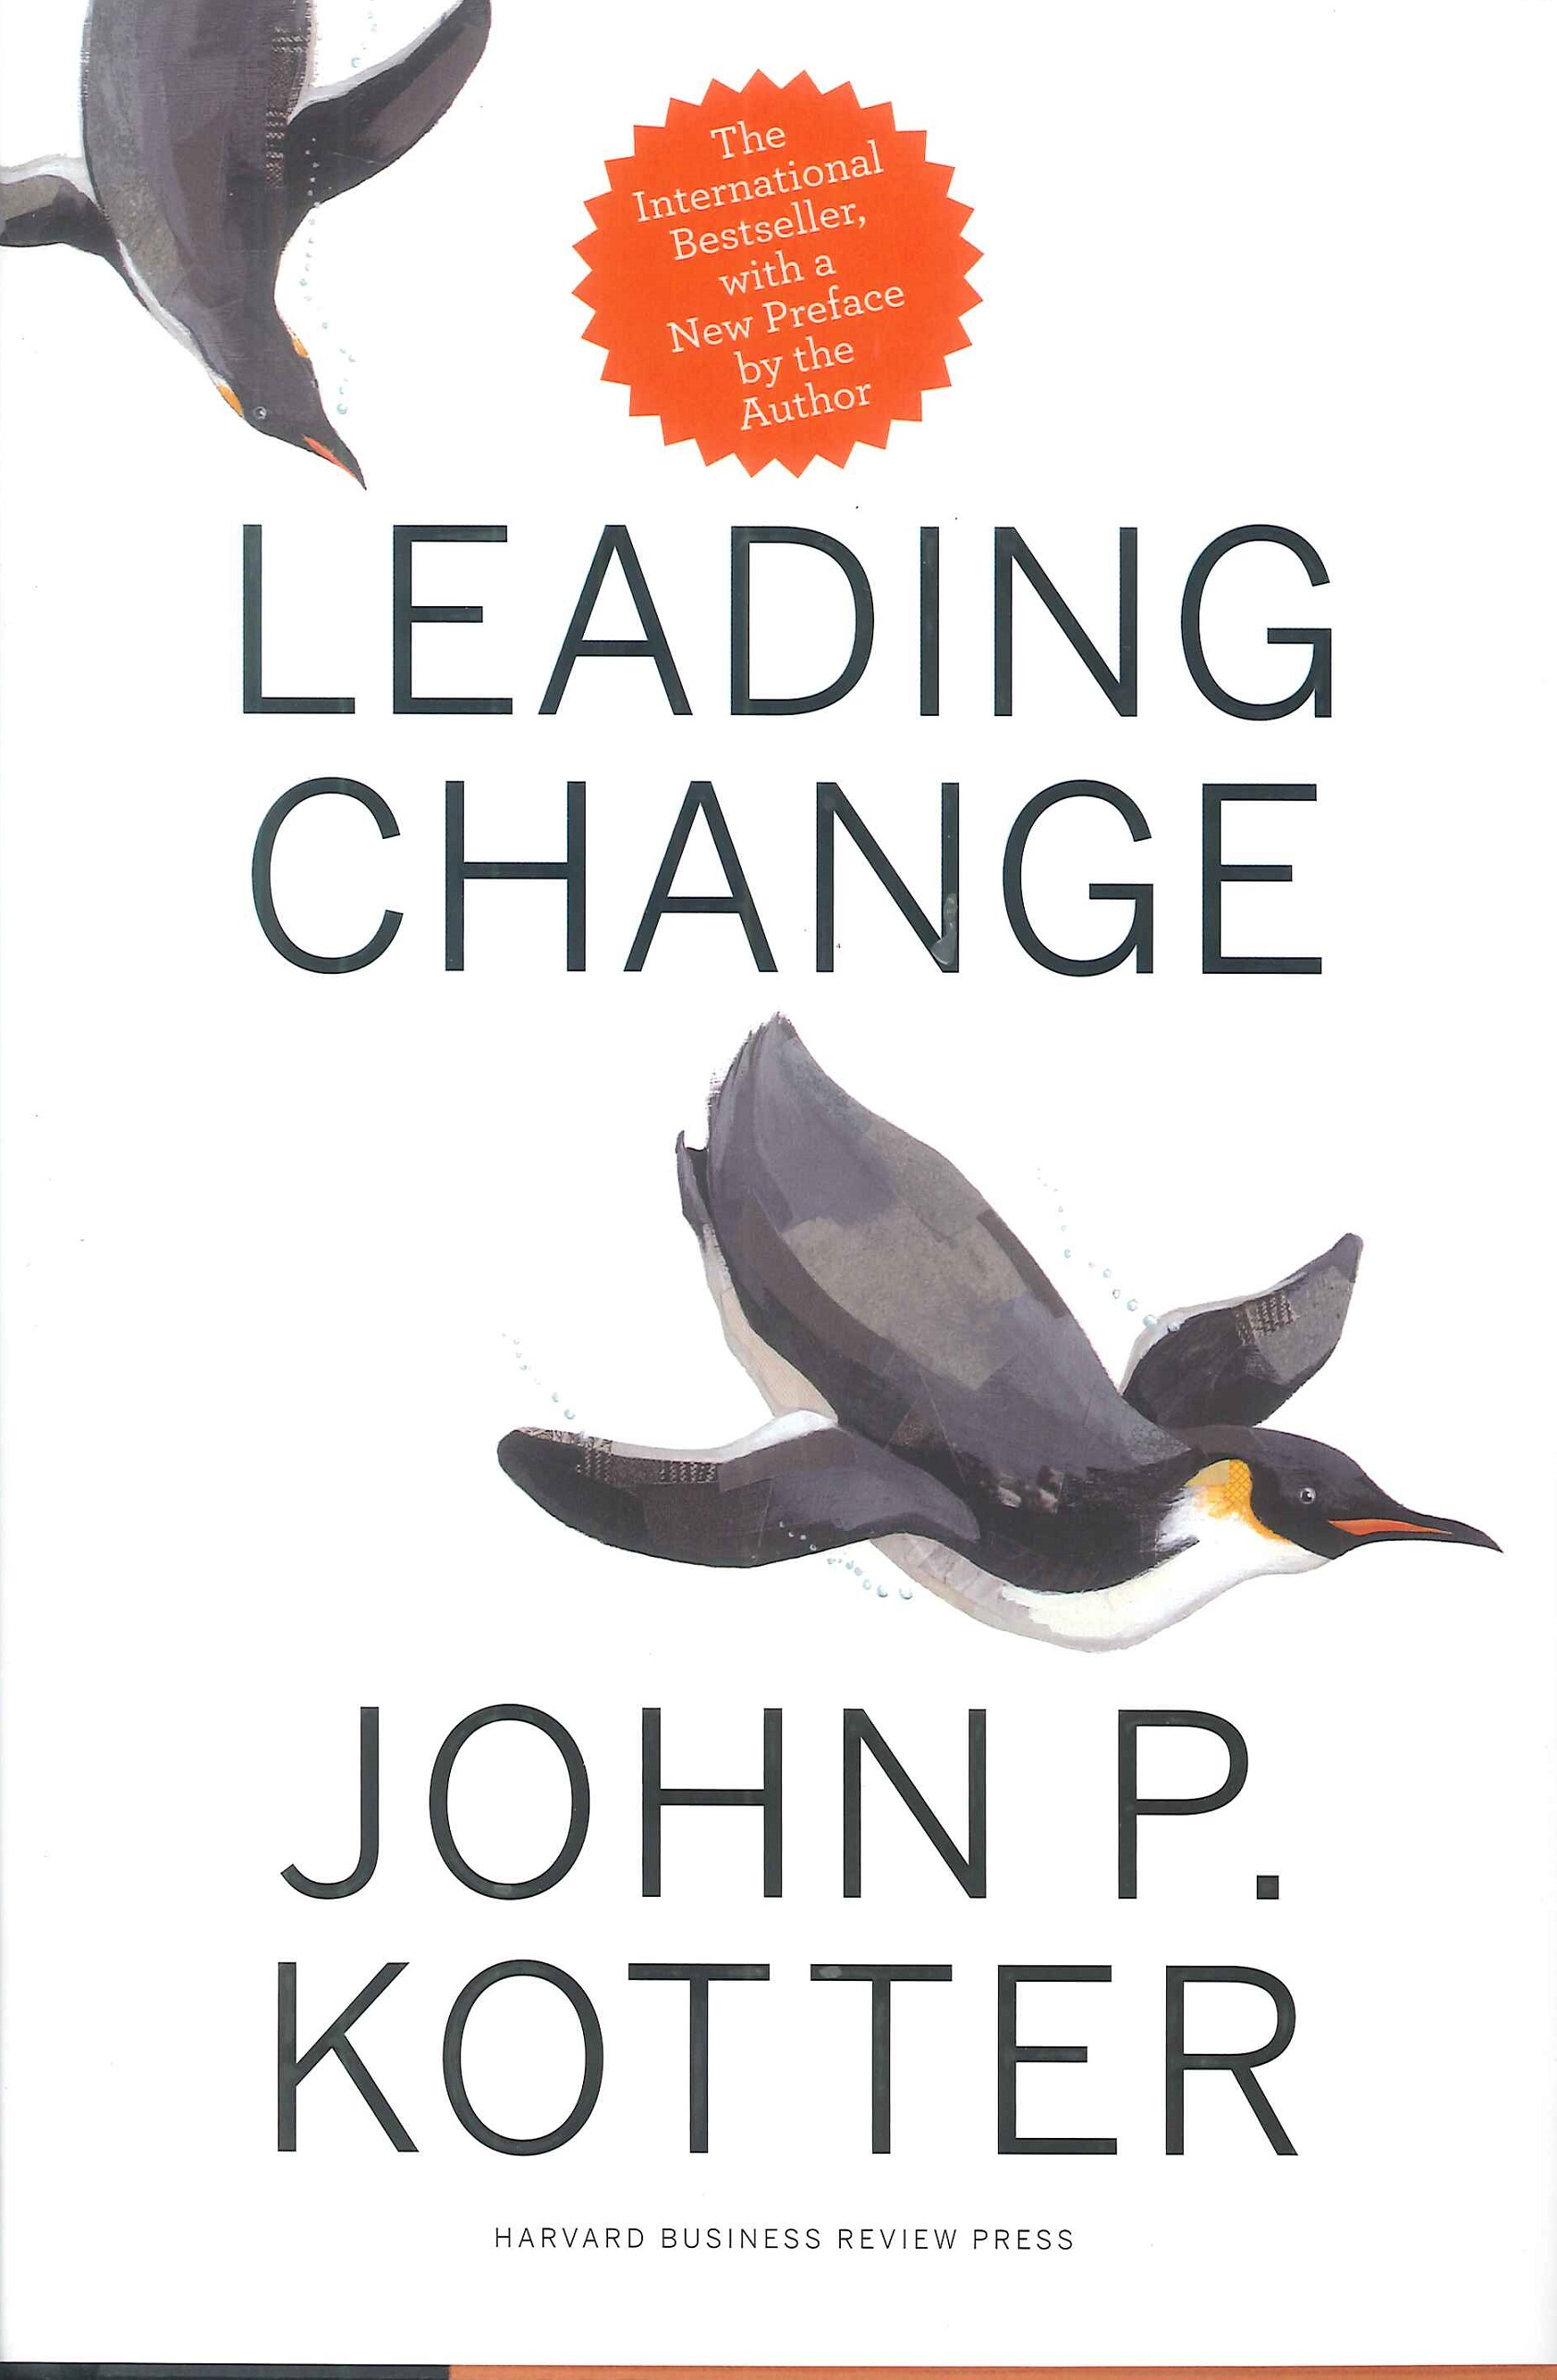 Leading change:with a new preface by the author